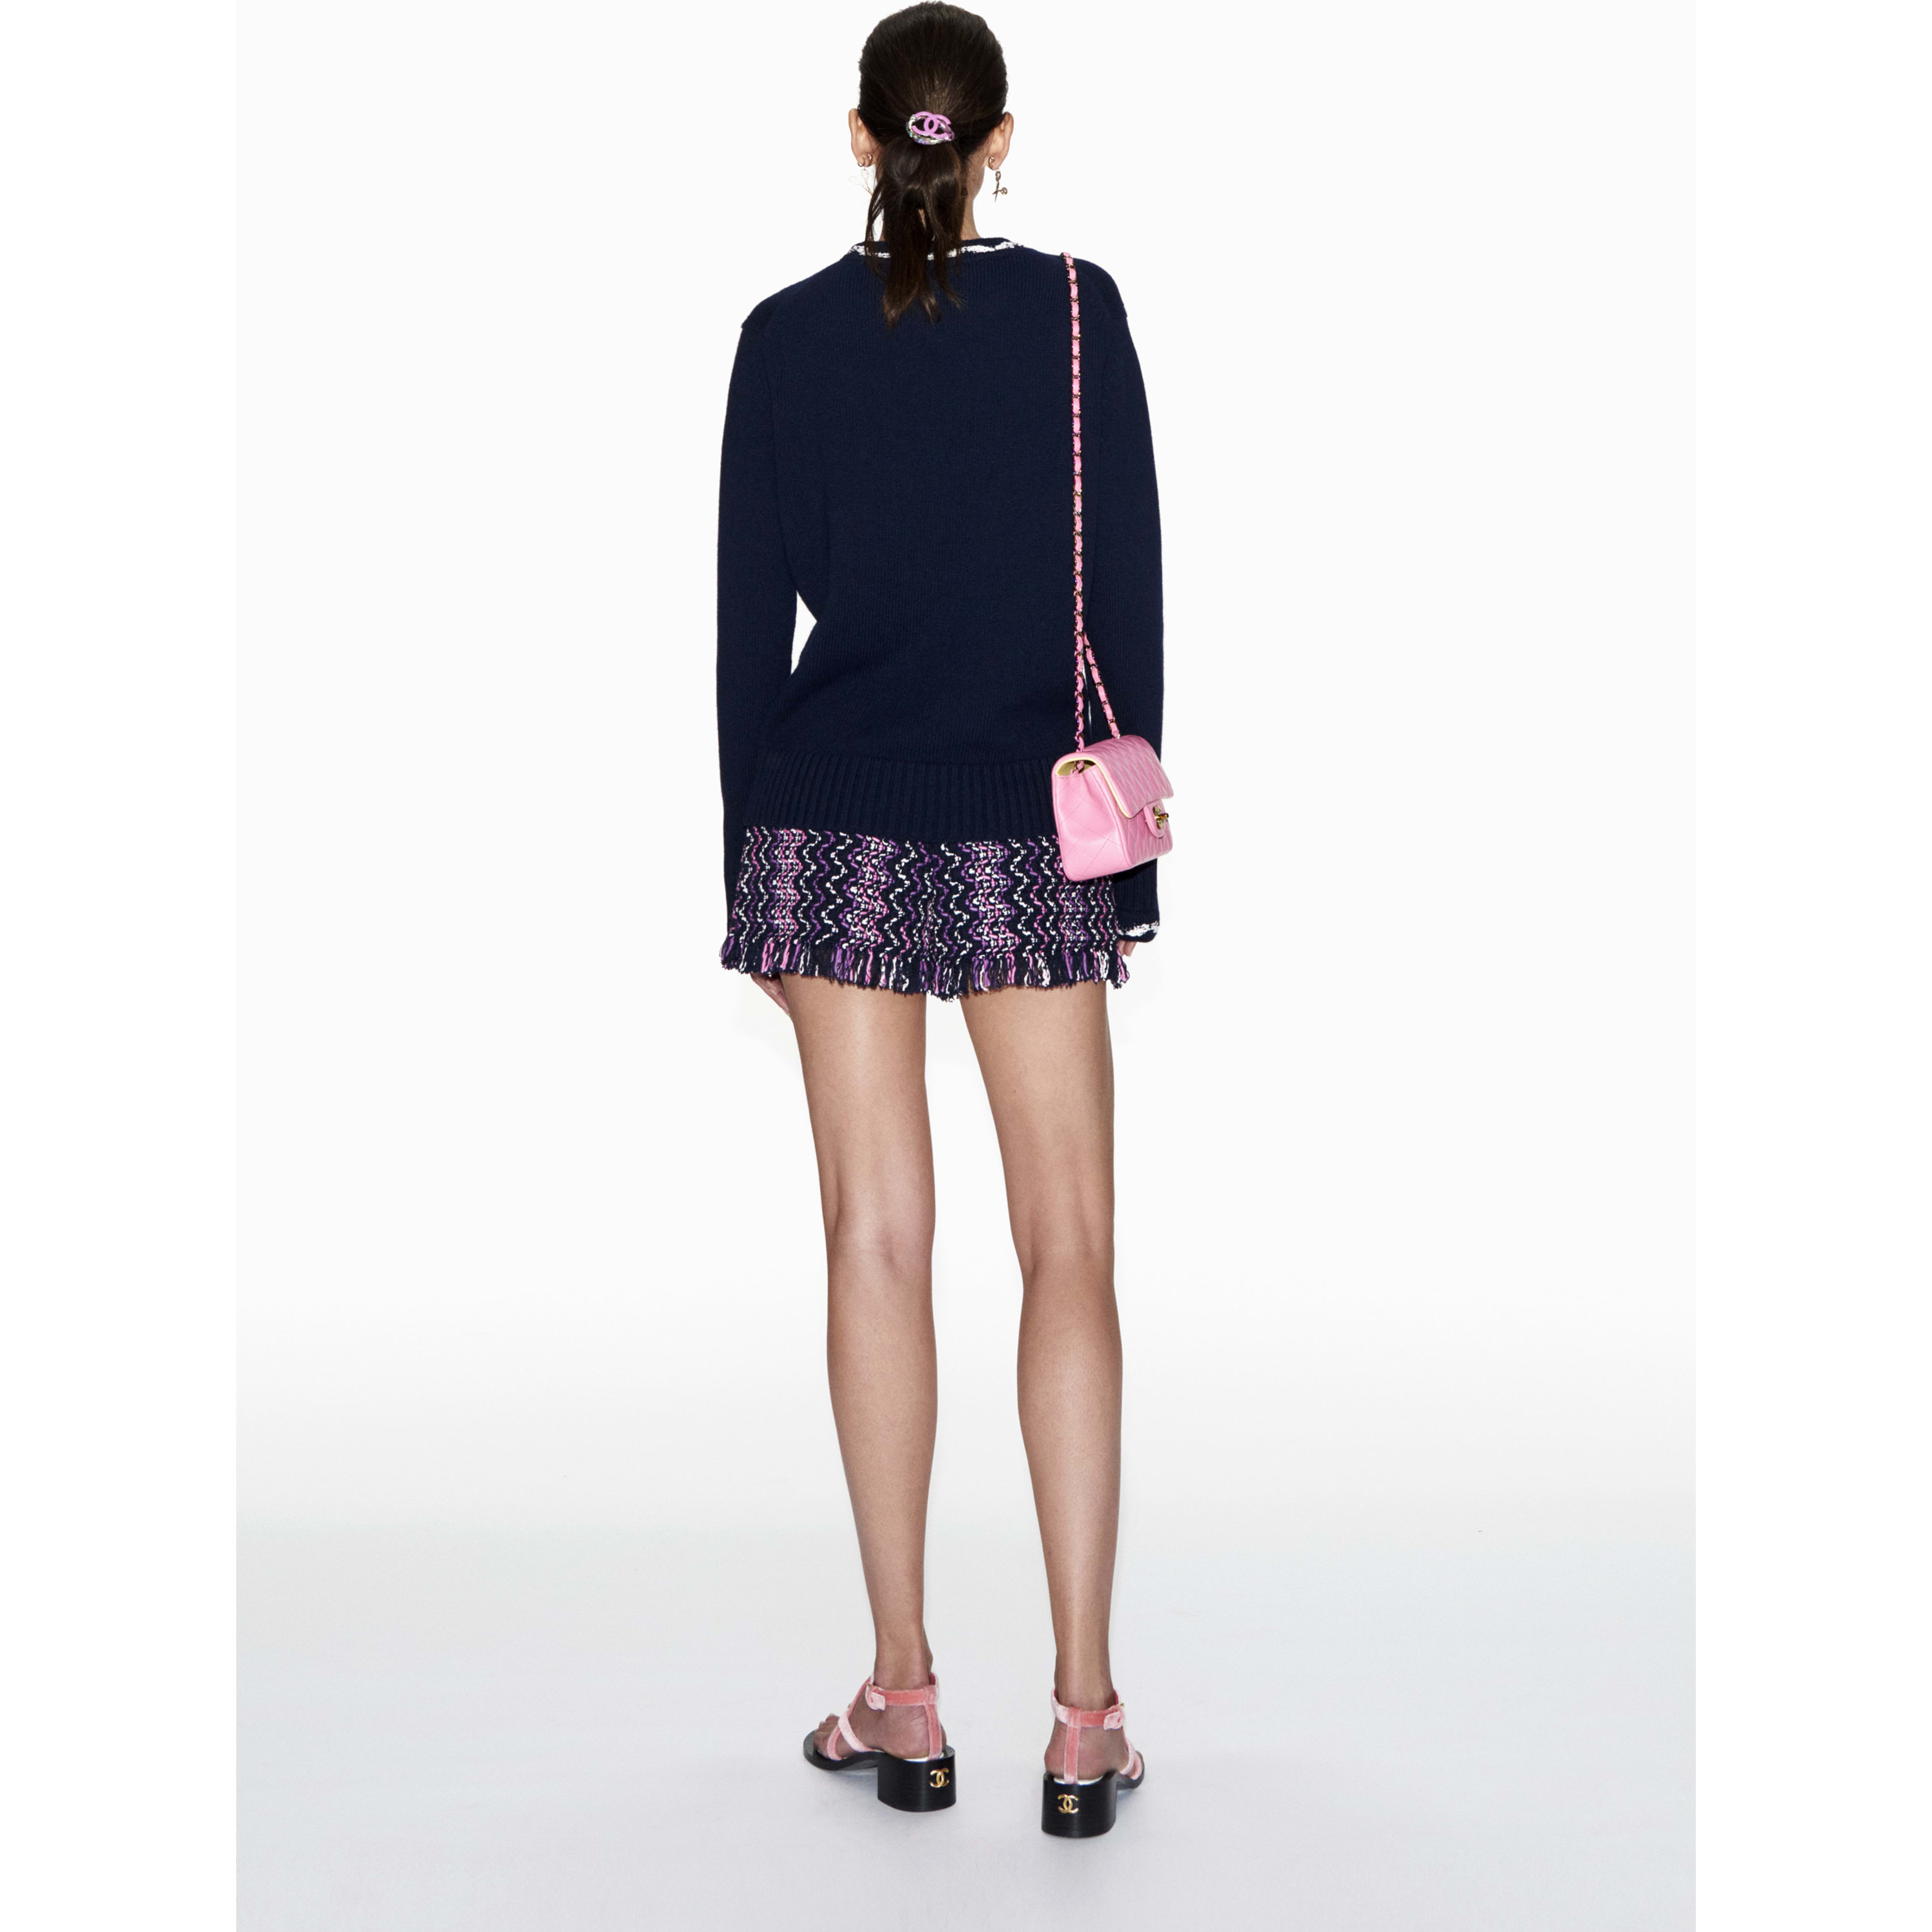 Sweater - Navy Blue & White - Cashmere - CHANEL - Alternative view - see standard sized version